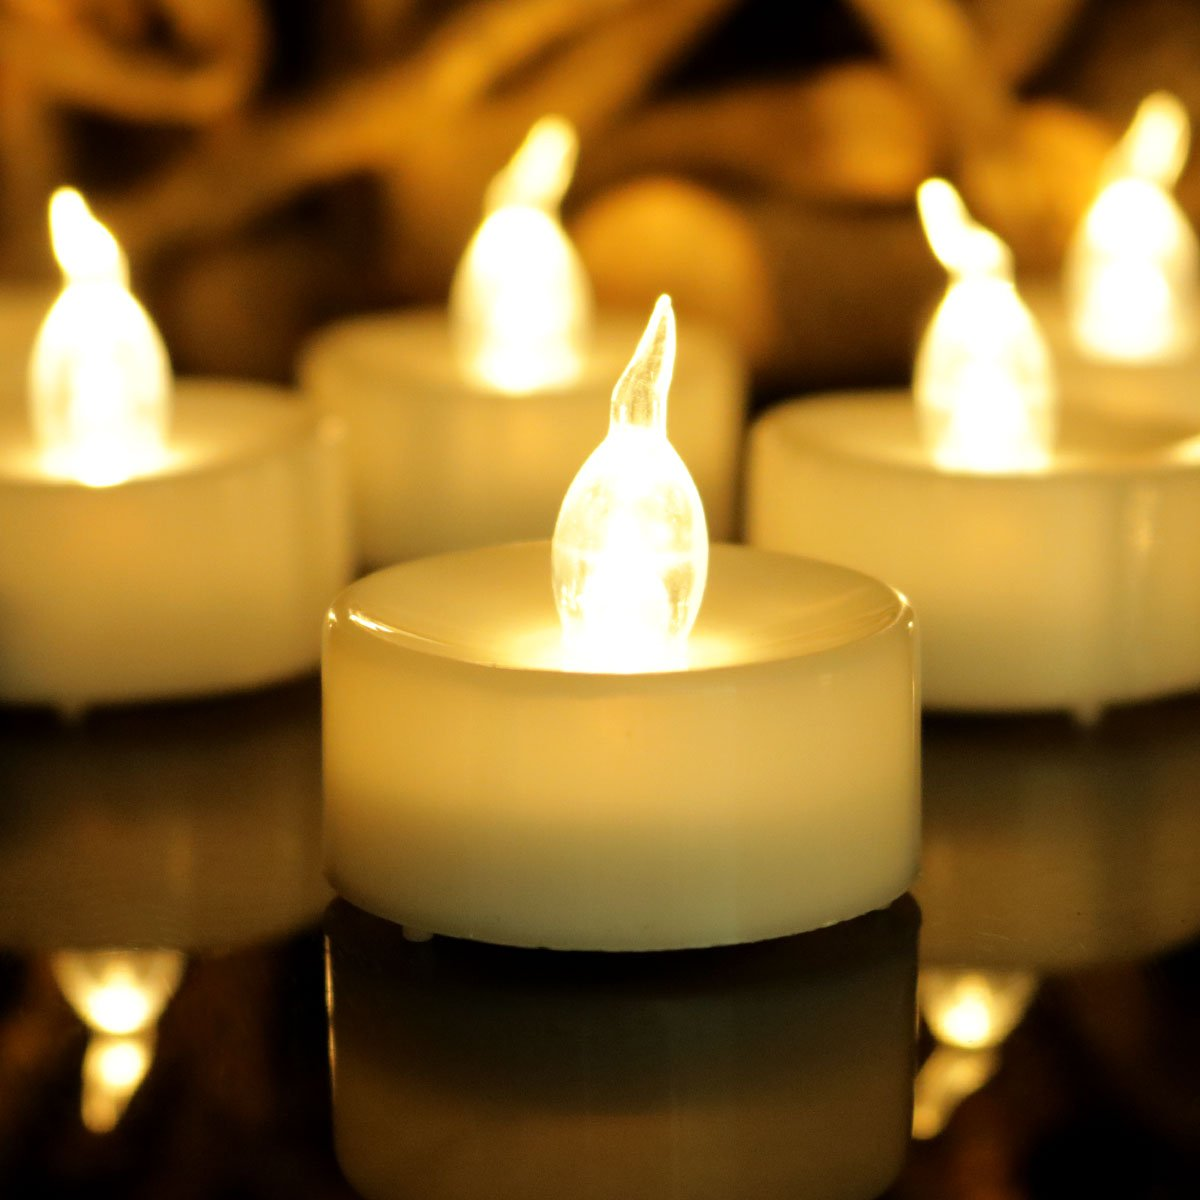 Micandle 100PCS Flickering Fireless Warm White Electronic LED Tealights Candles,Battery-Oparetion(Included)Lasting over 150+ Hrs,For Halloween,Votive,Wedding,Holiday,Home Décor,Size:1.4''D x 1.25''H Home Décor